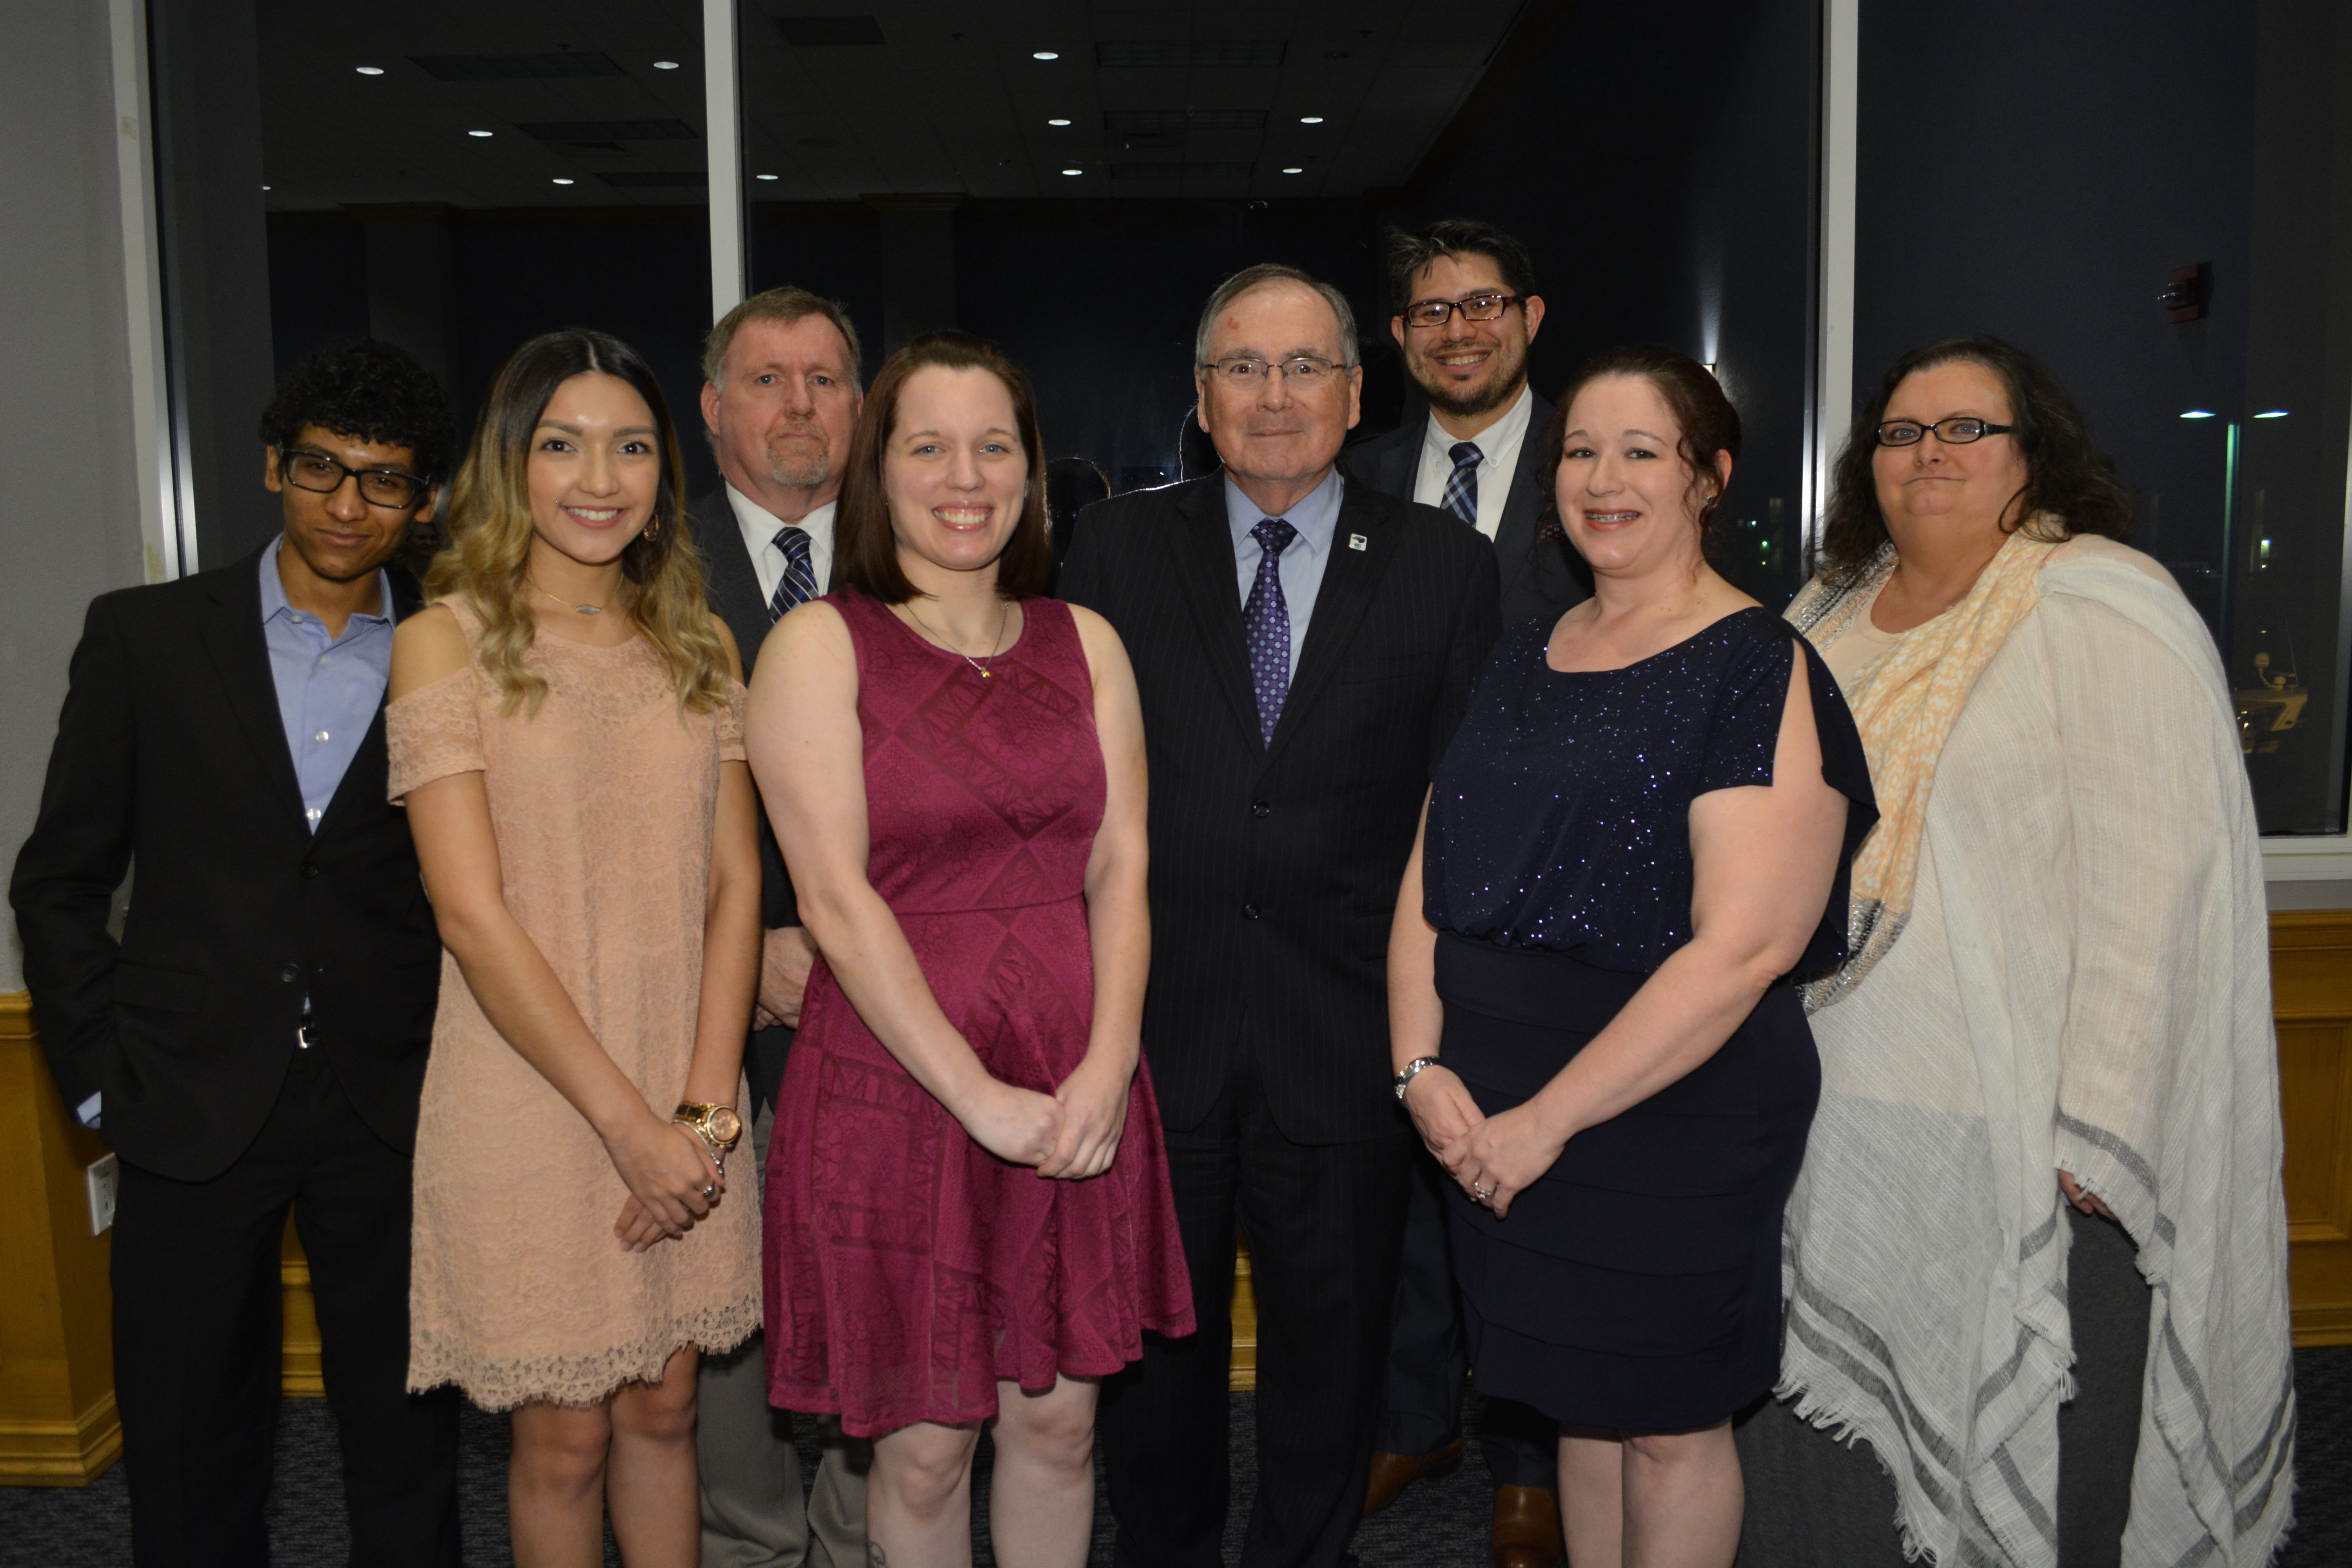 UHCL president recognizes donors for lasting impact on students